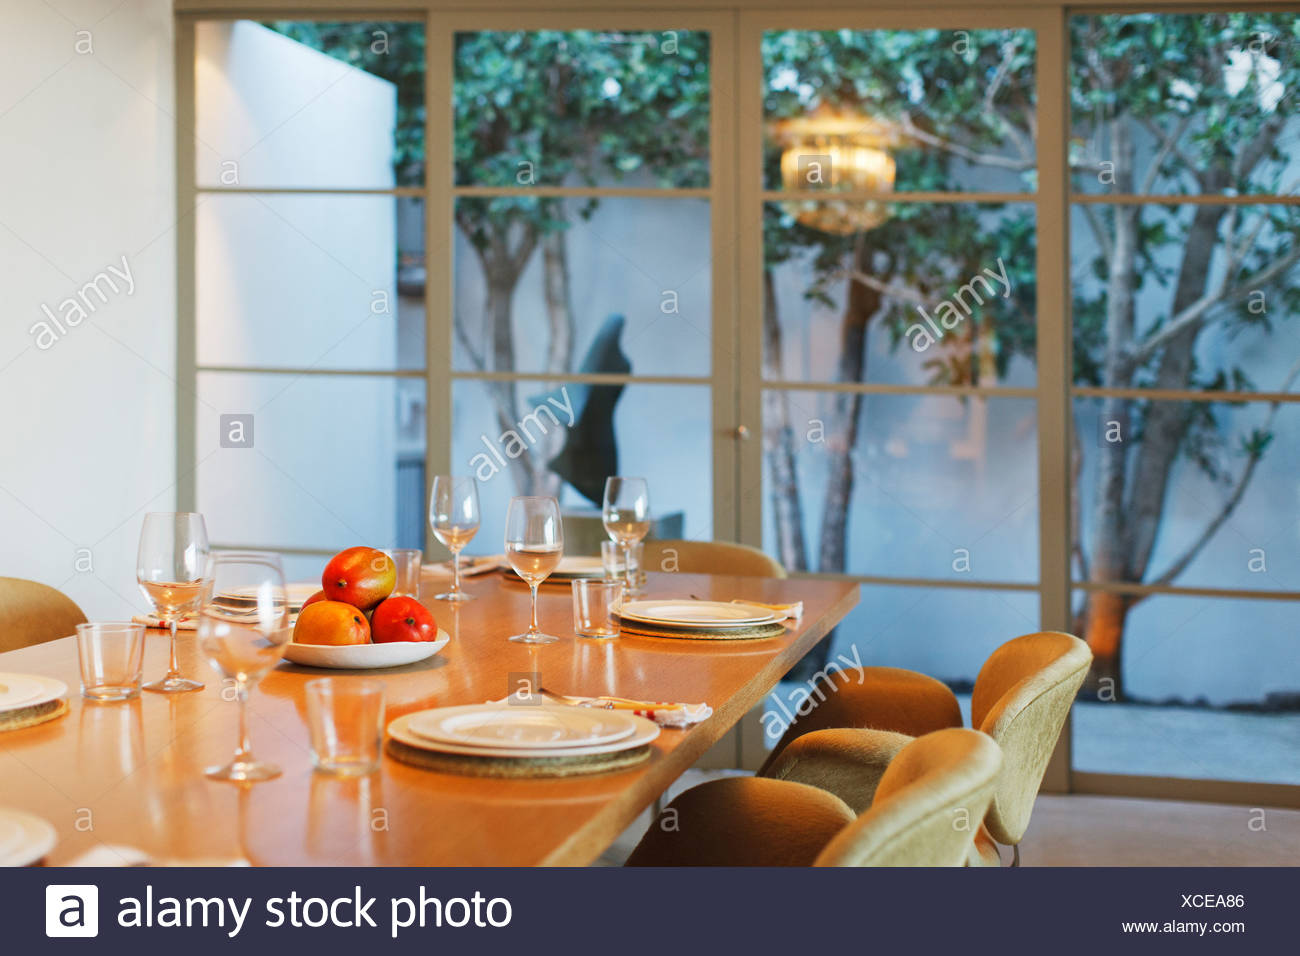 Place settings on dining table - Stock Image